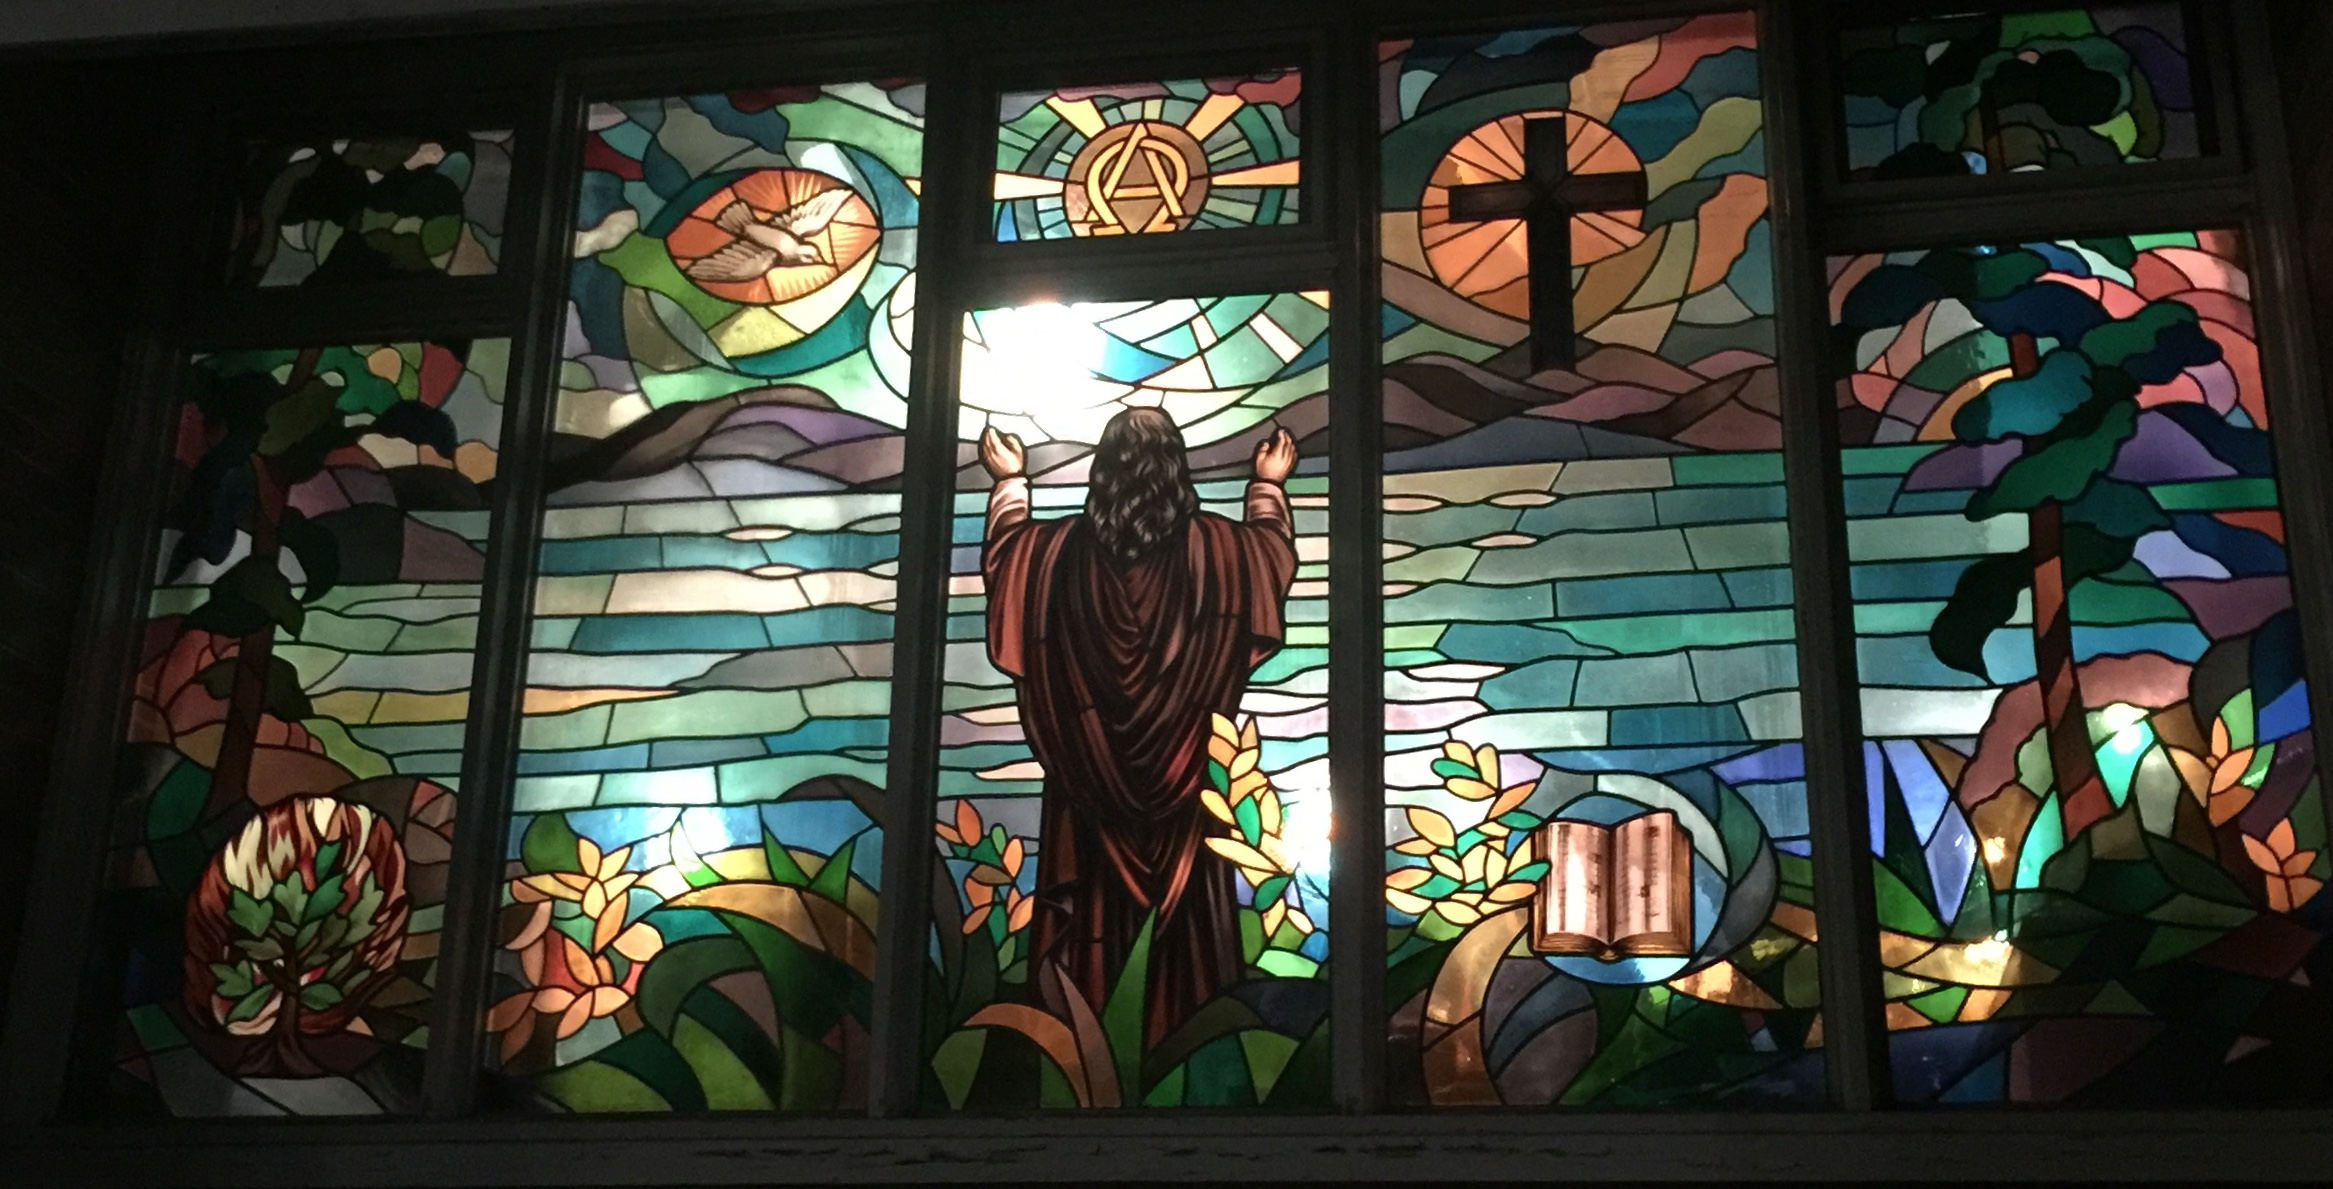 Stained Glass window, lit from inside